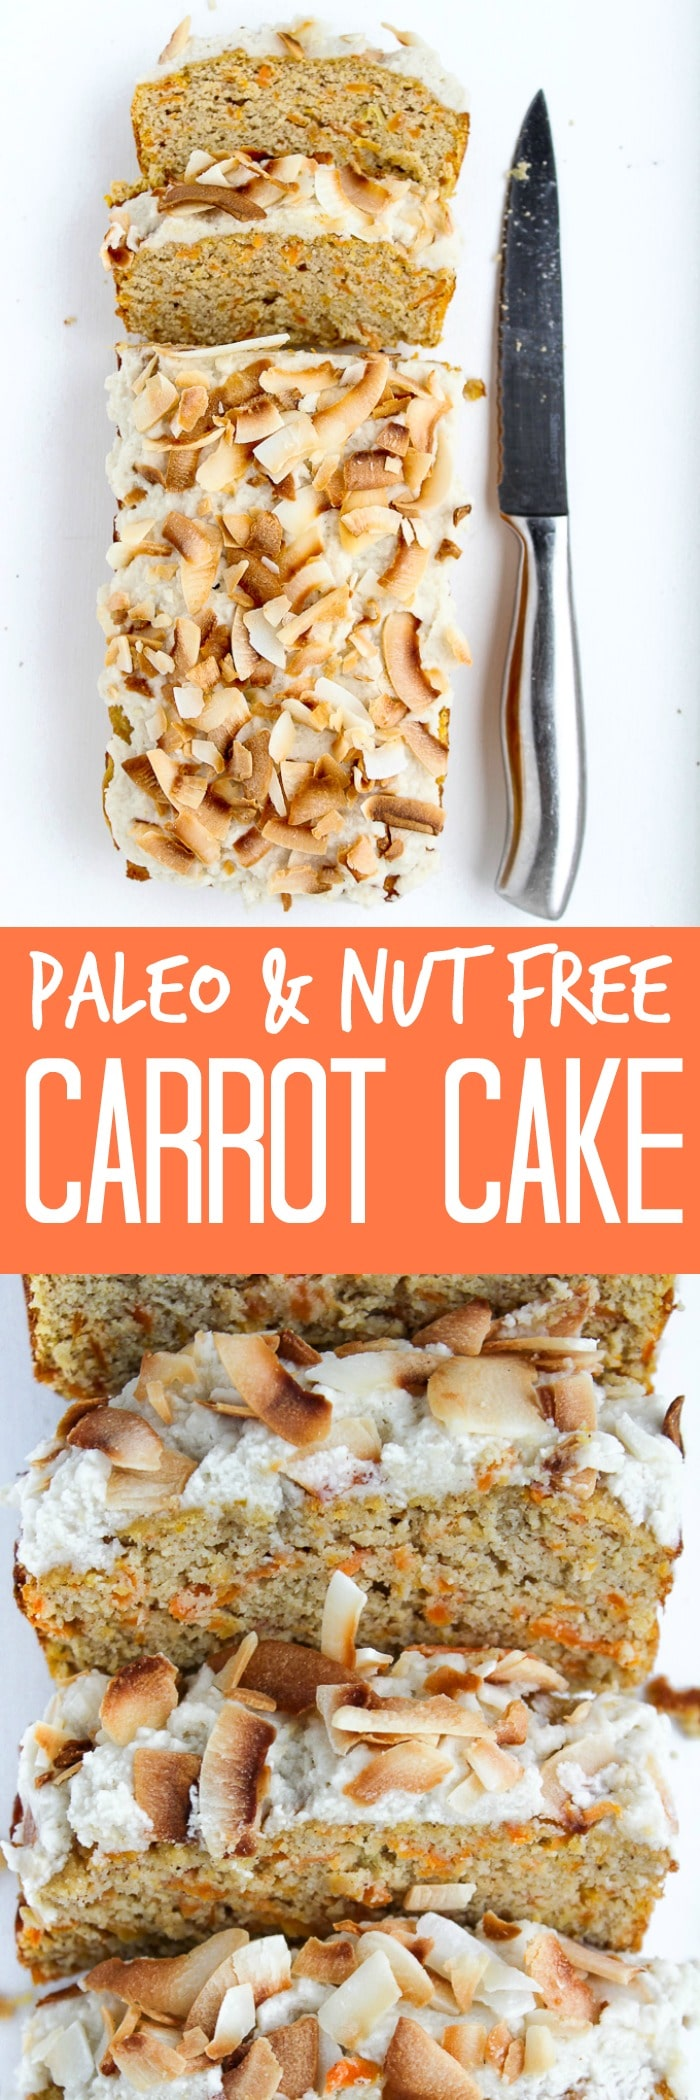 Nut Free Paleo Carrot Cake A healthier, gluten free and dairy free alternative to carrot cake!